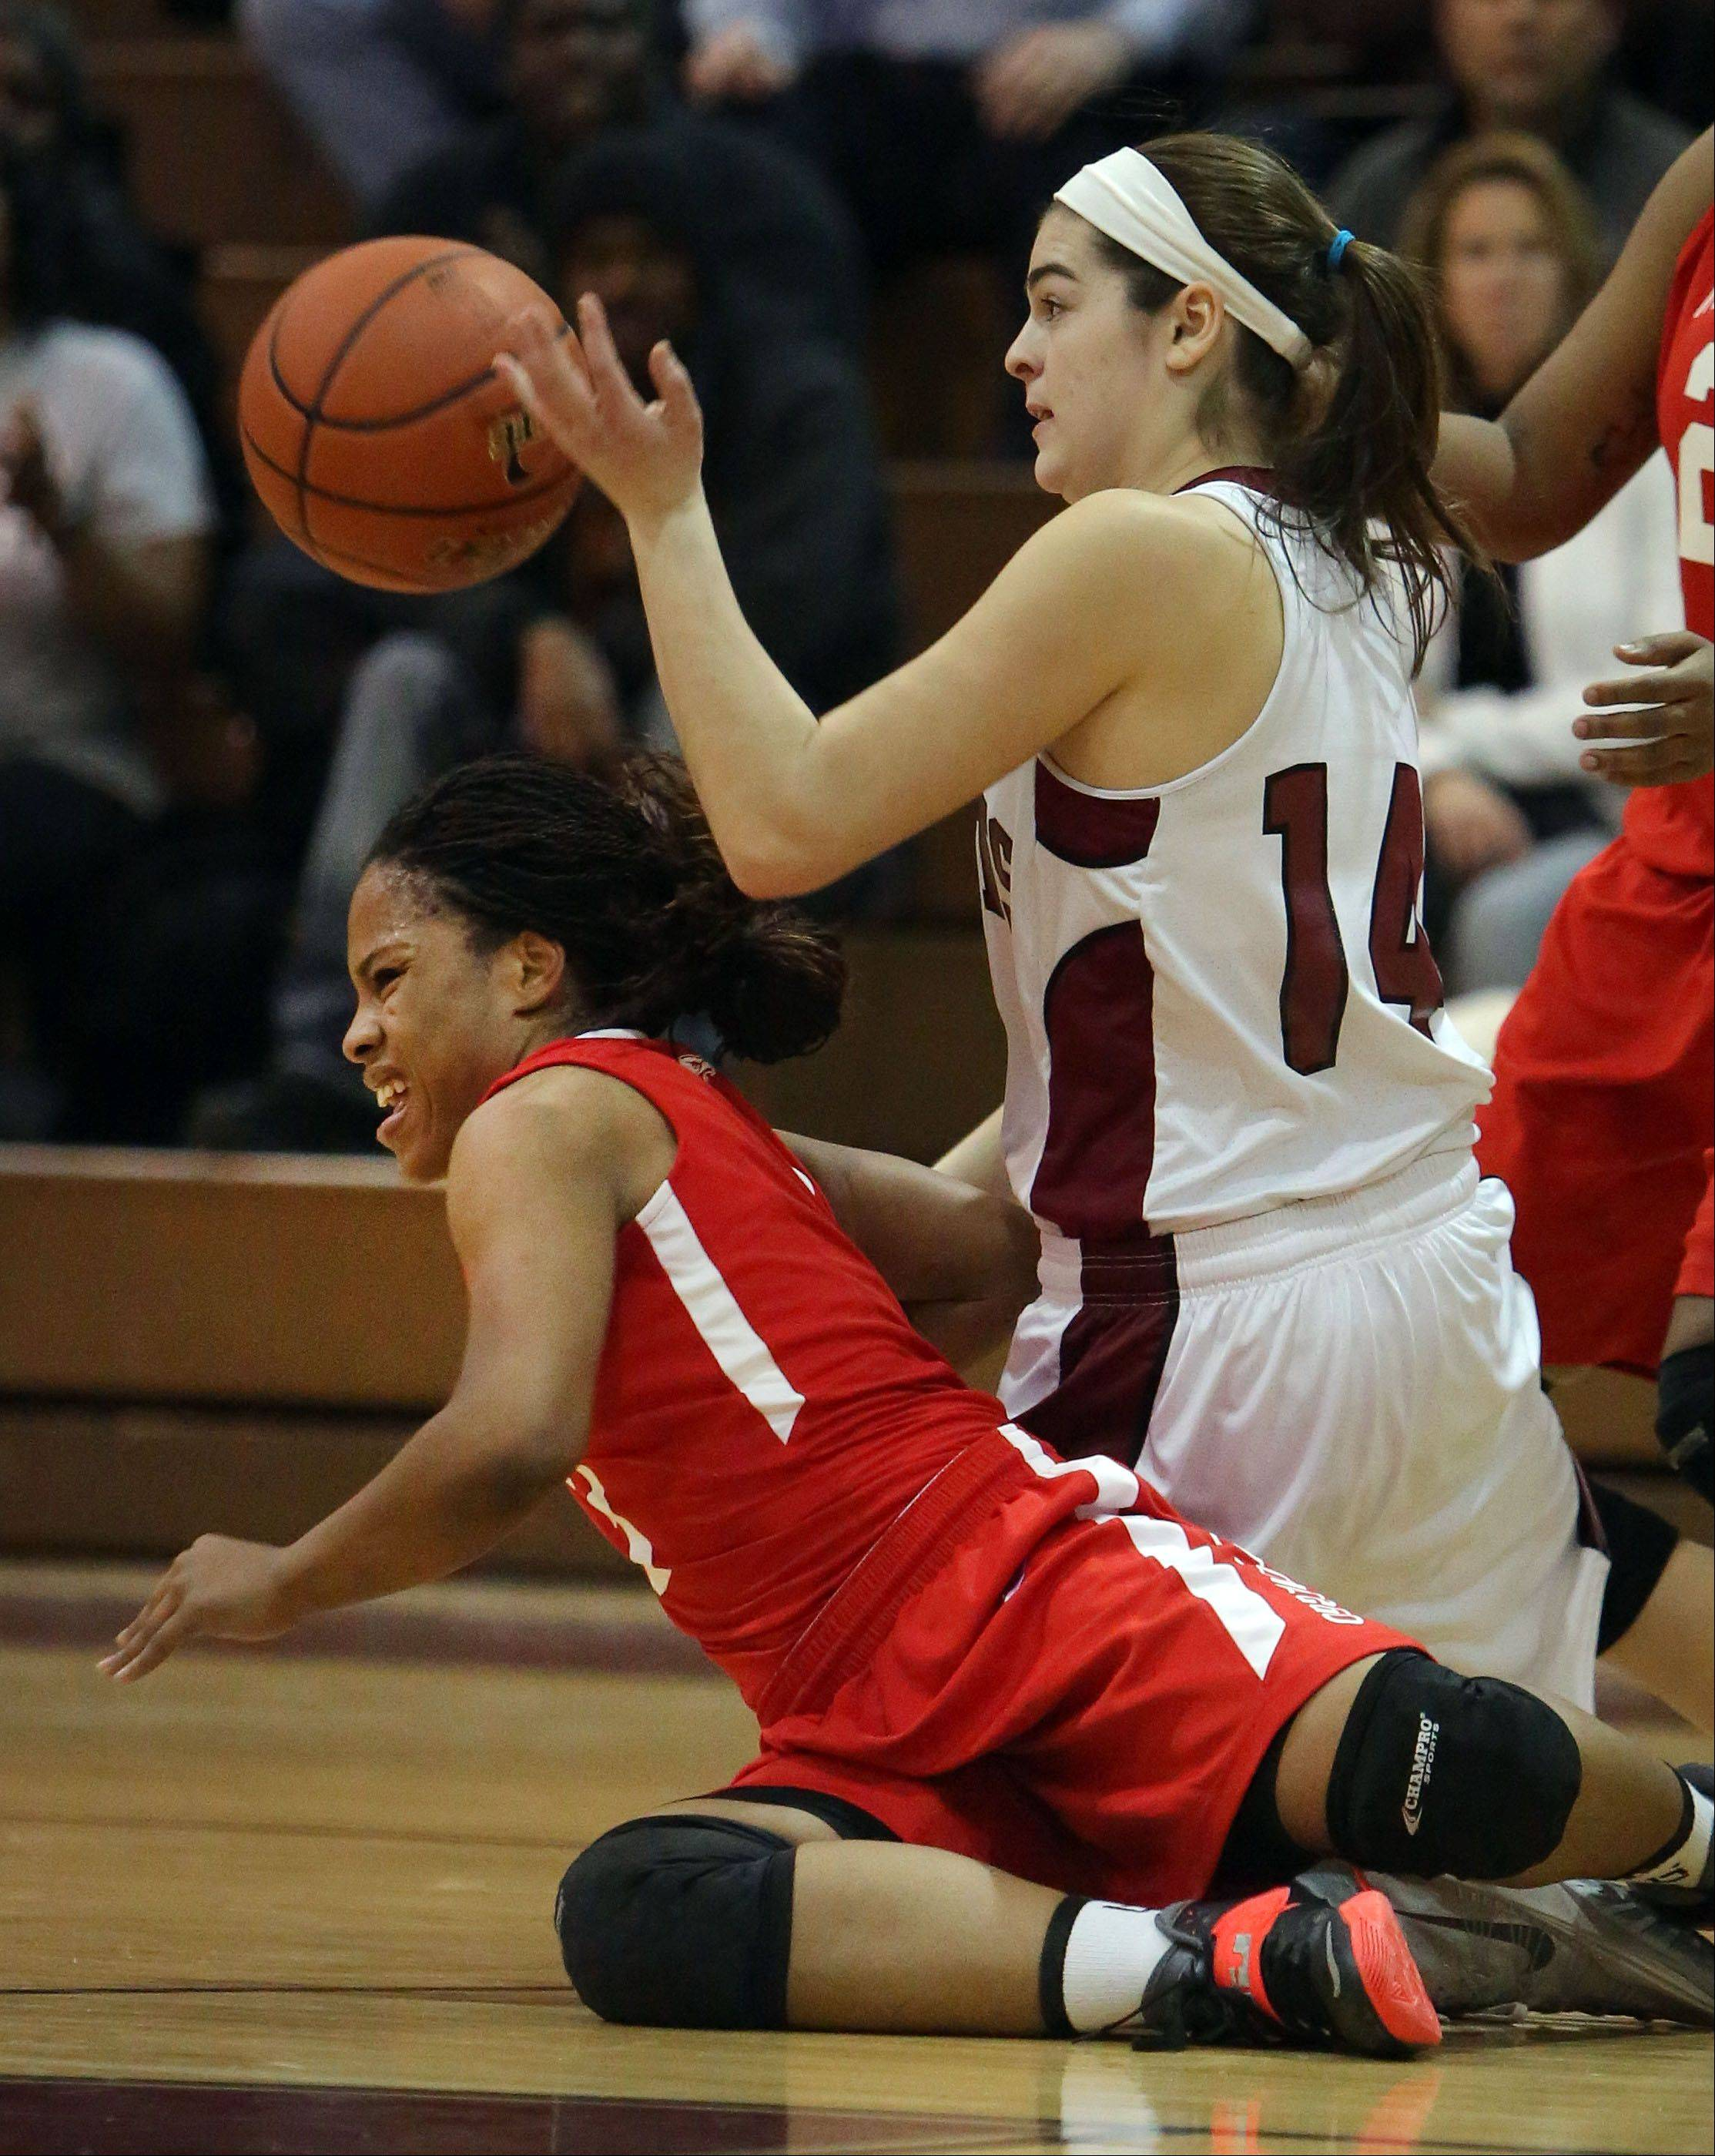 Antioch's Amy Reiser, right, and North Chicago's Alexis Means scramble for a loose ball on Wednesday night at Antioch.